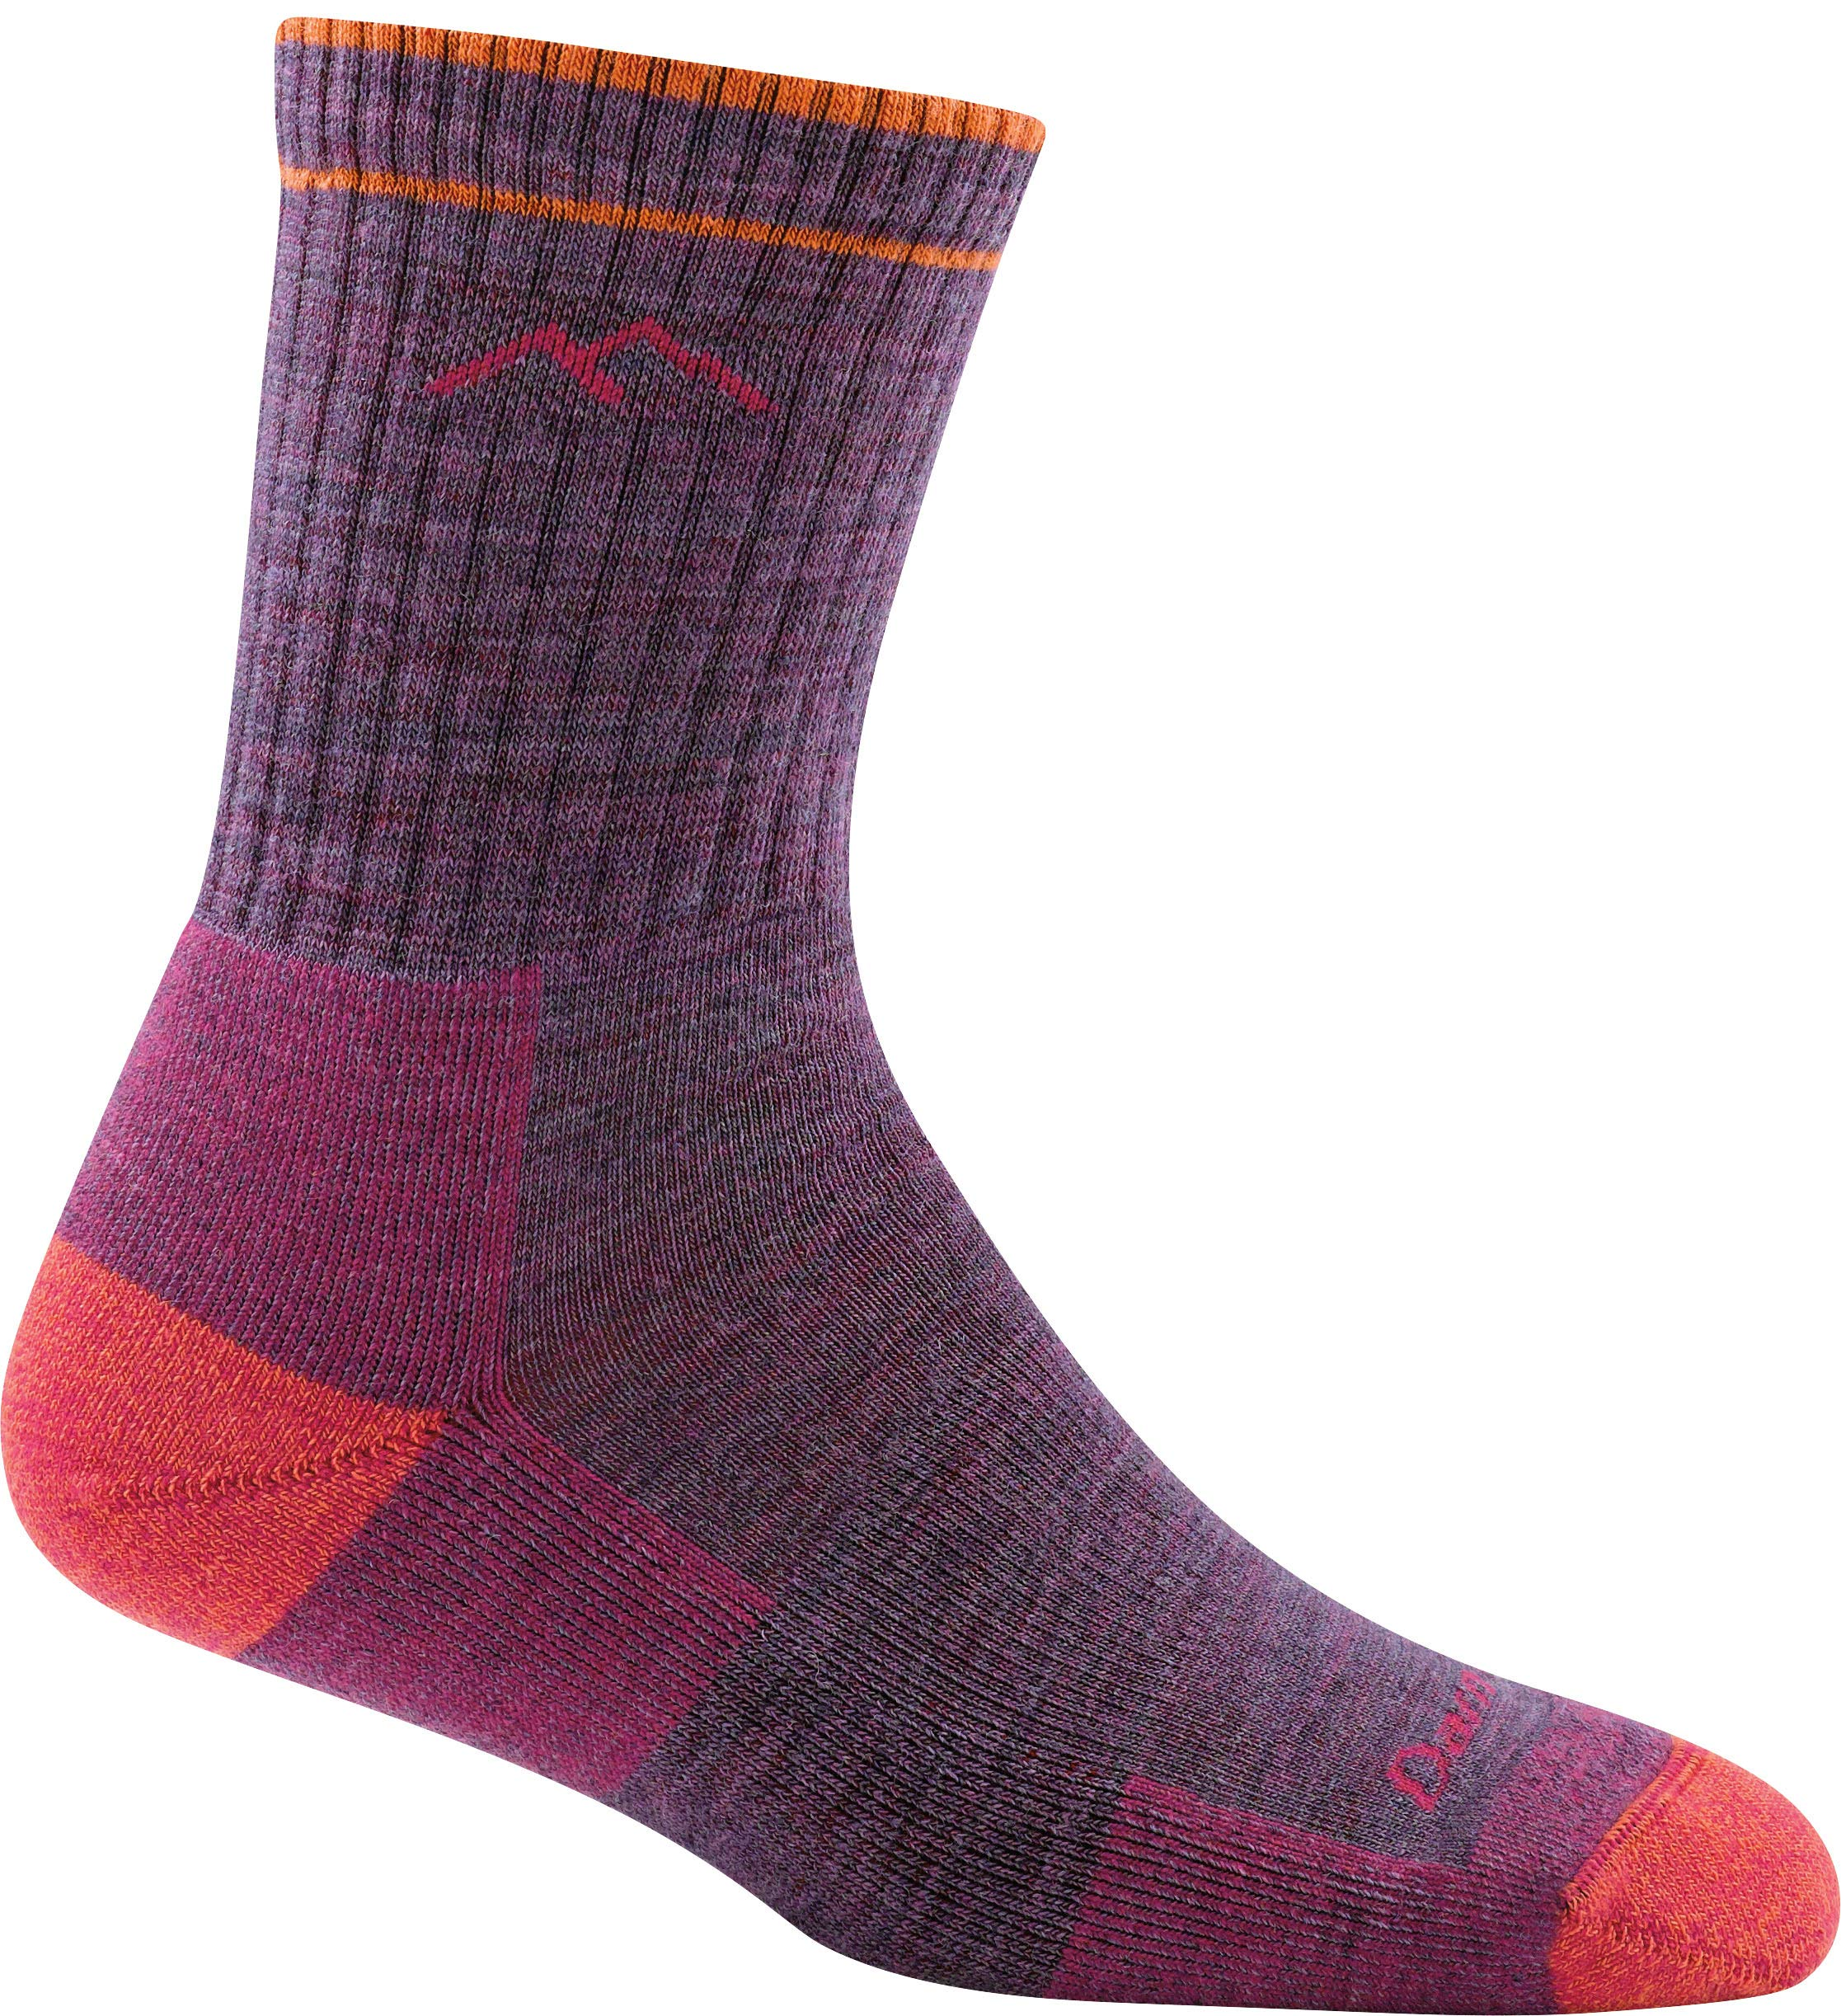 Darn Tough Cushion Boot Socks - Women's Plum Heather Small by Darn Tough